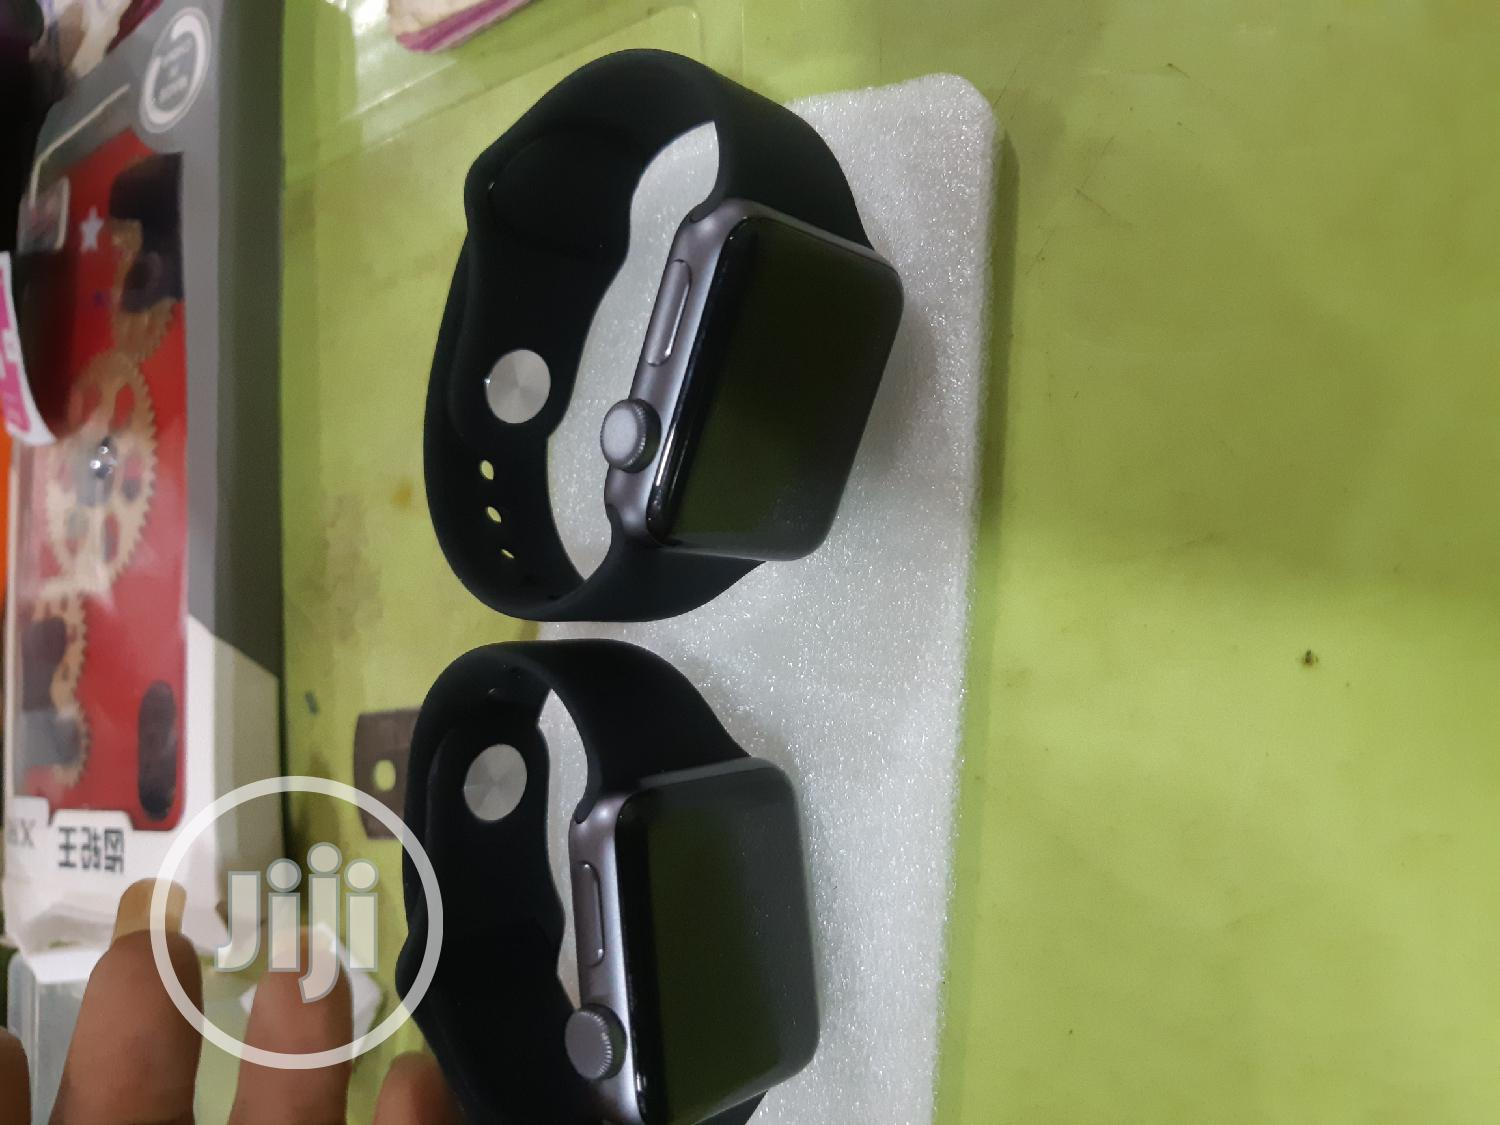 Apple Series 3 With Charger   Smart Watches & Trackers for sale in Benin City, Edo State, Nigeria